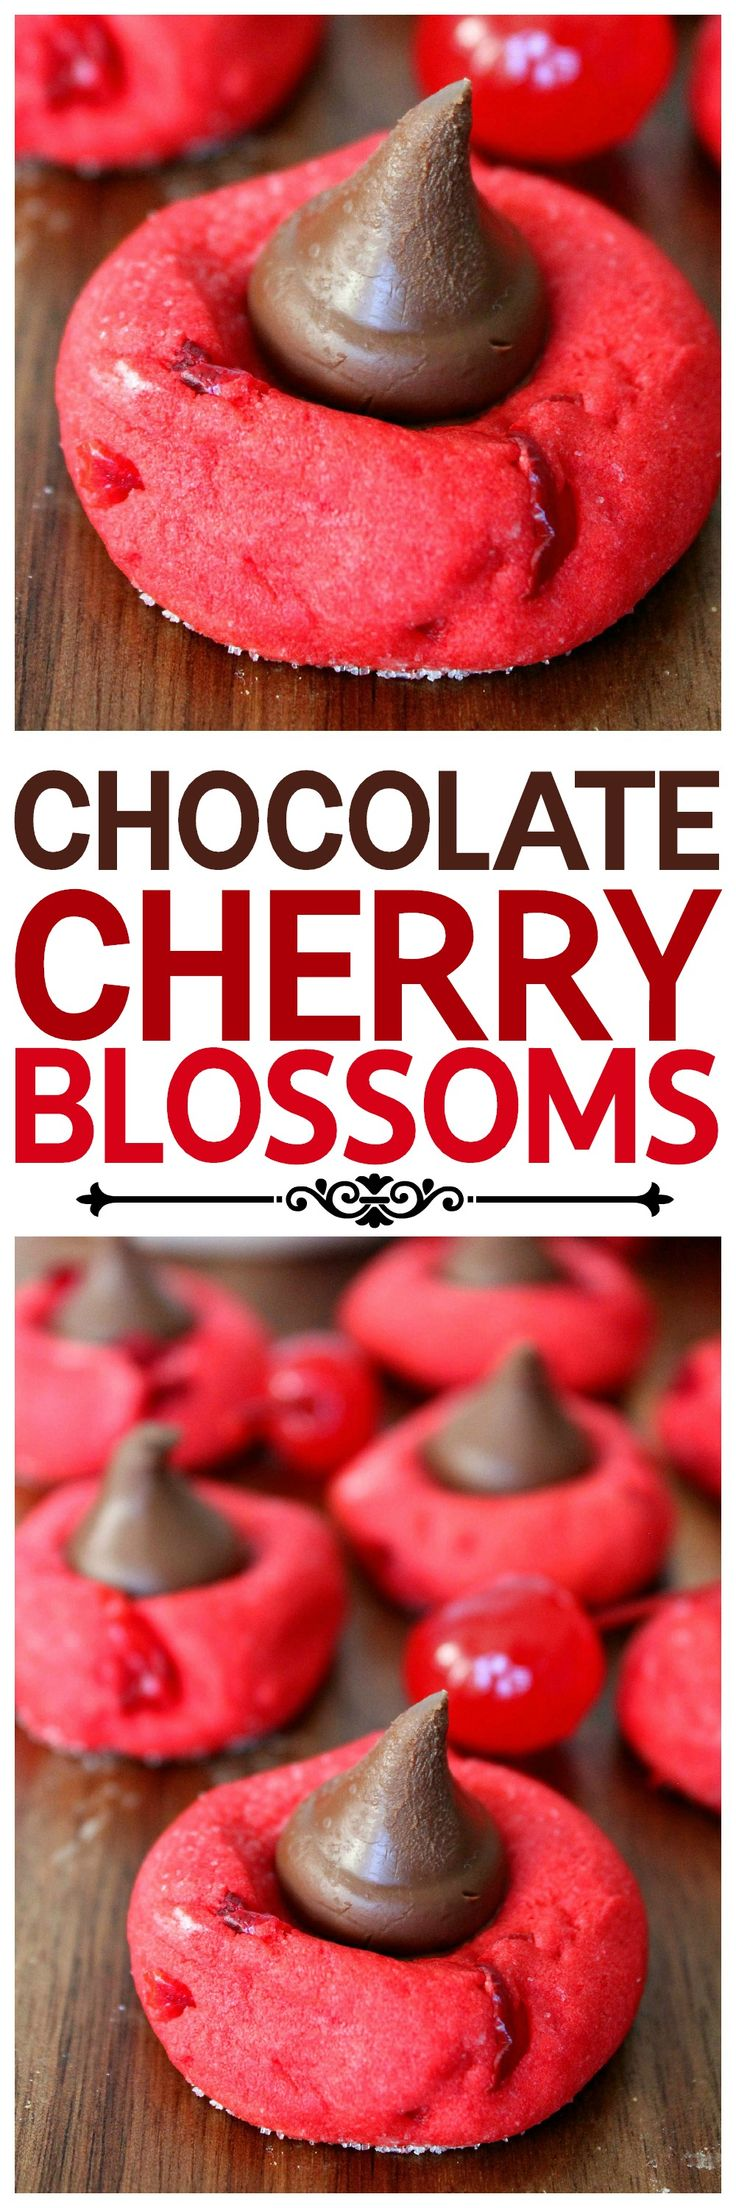 Chocolate Cherry Blossom Cookies: Baking Beauty